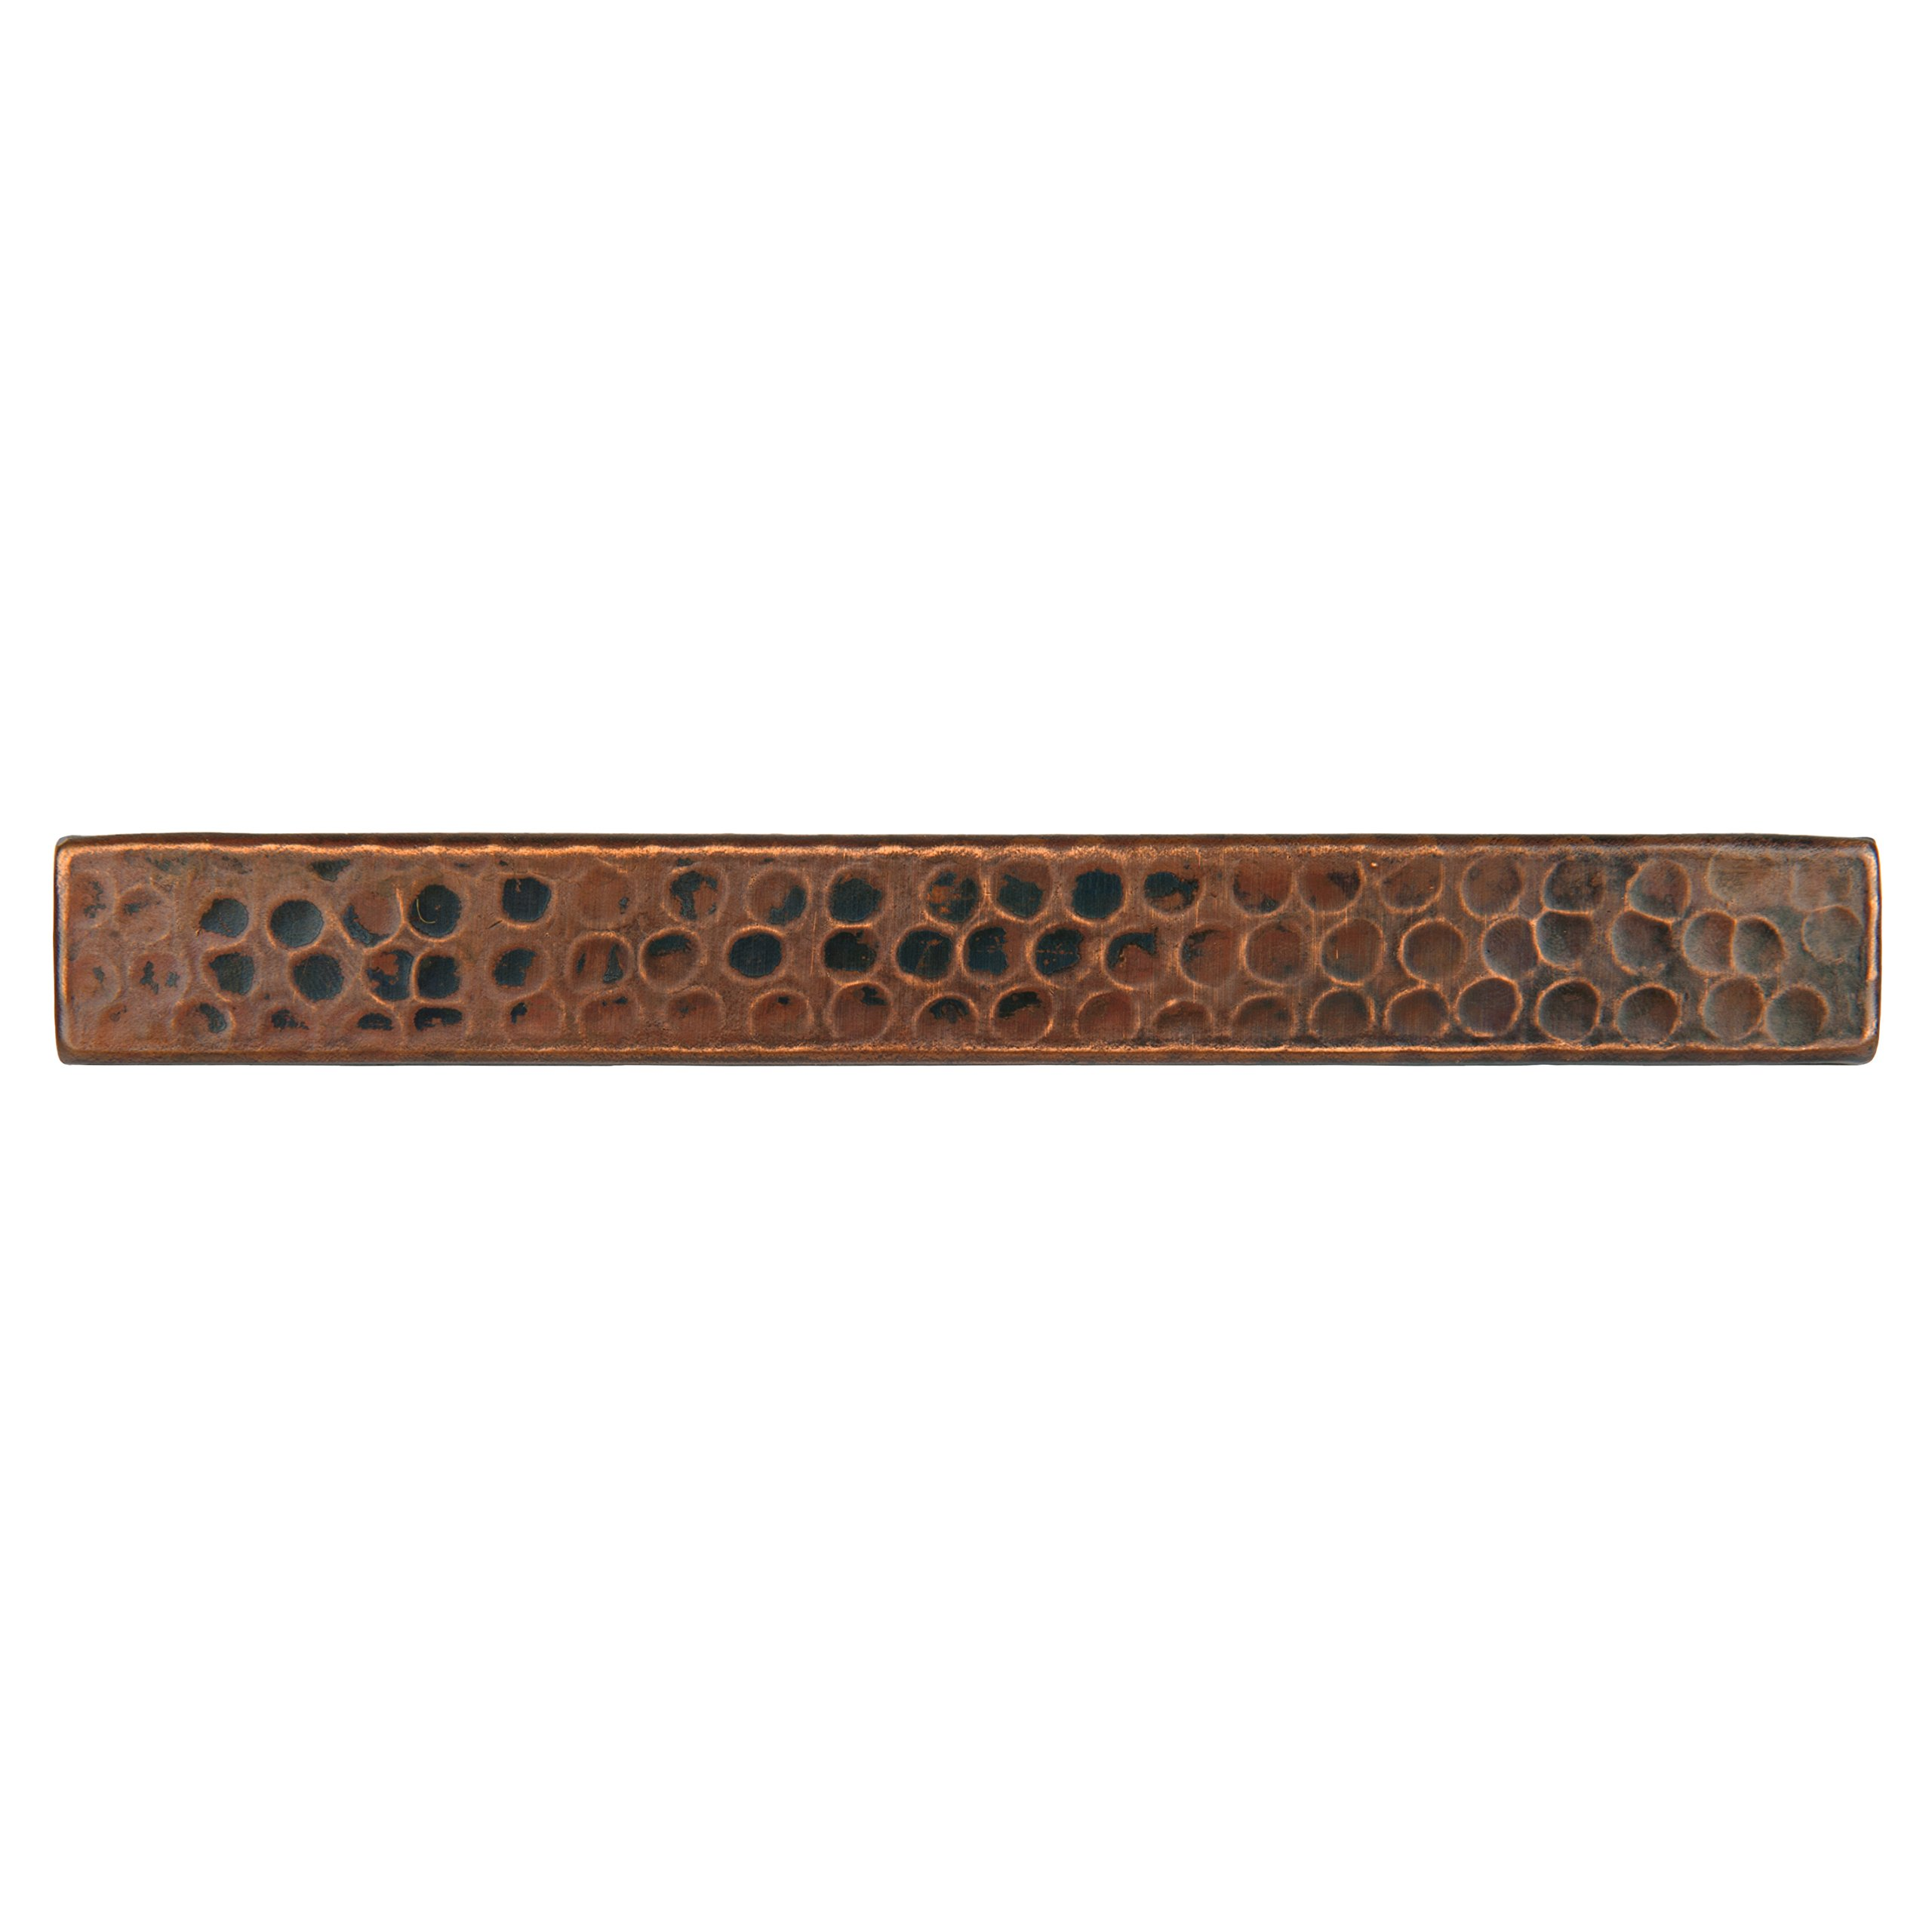 Premier Copper Products T18DBH_PKG8 1-Inch by 8-Inch Hammered Copper Tile - Quantity 8, Oil Rubbed Bronze